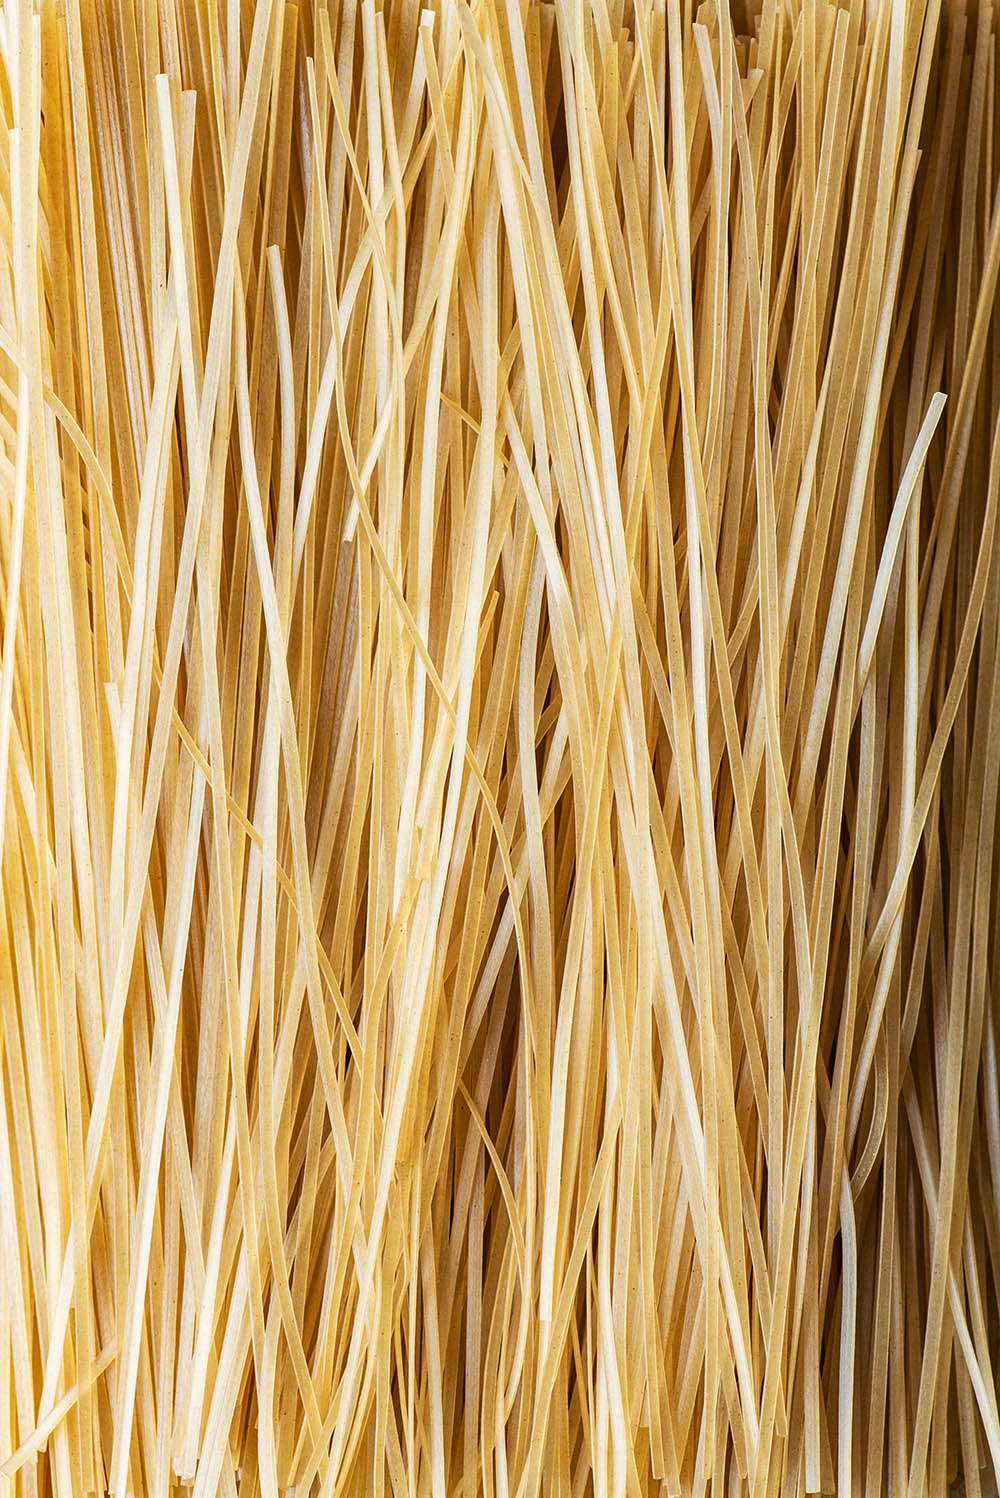 Dry brown rice noodles close up.